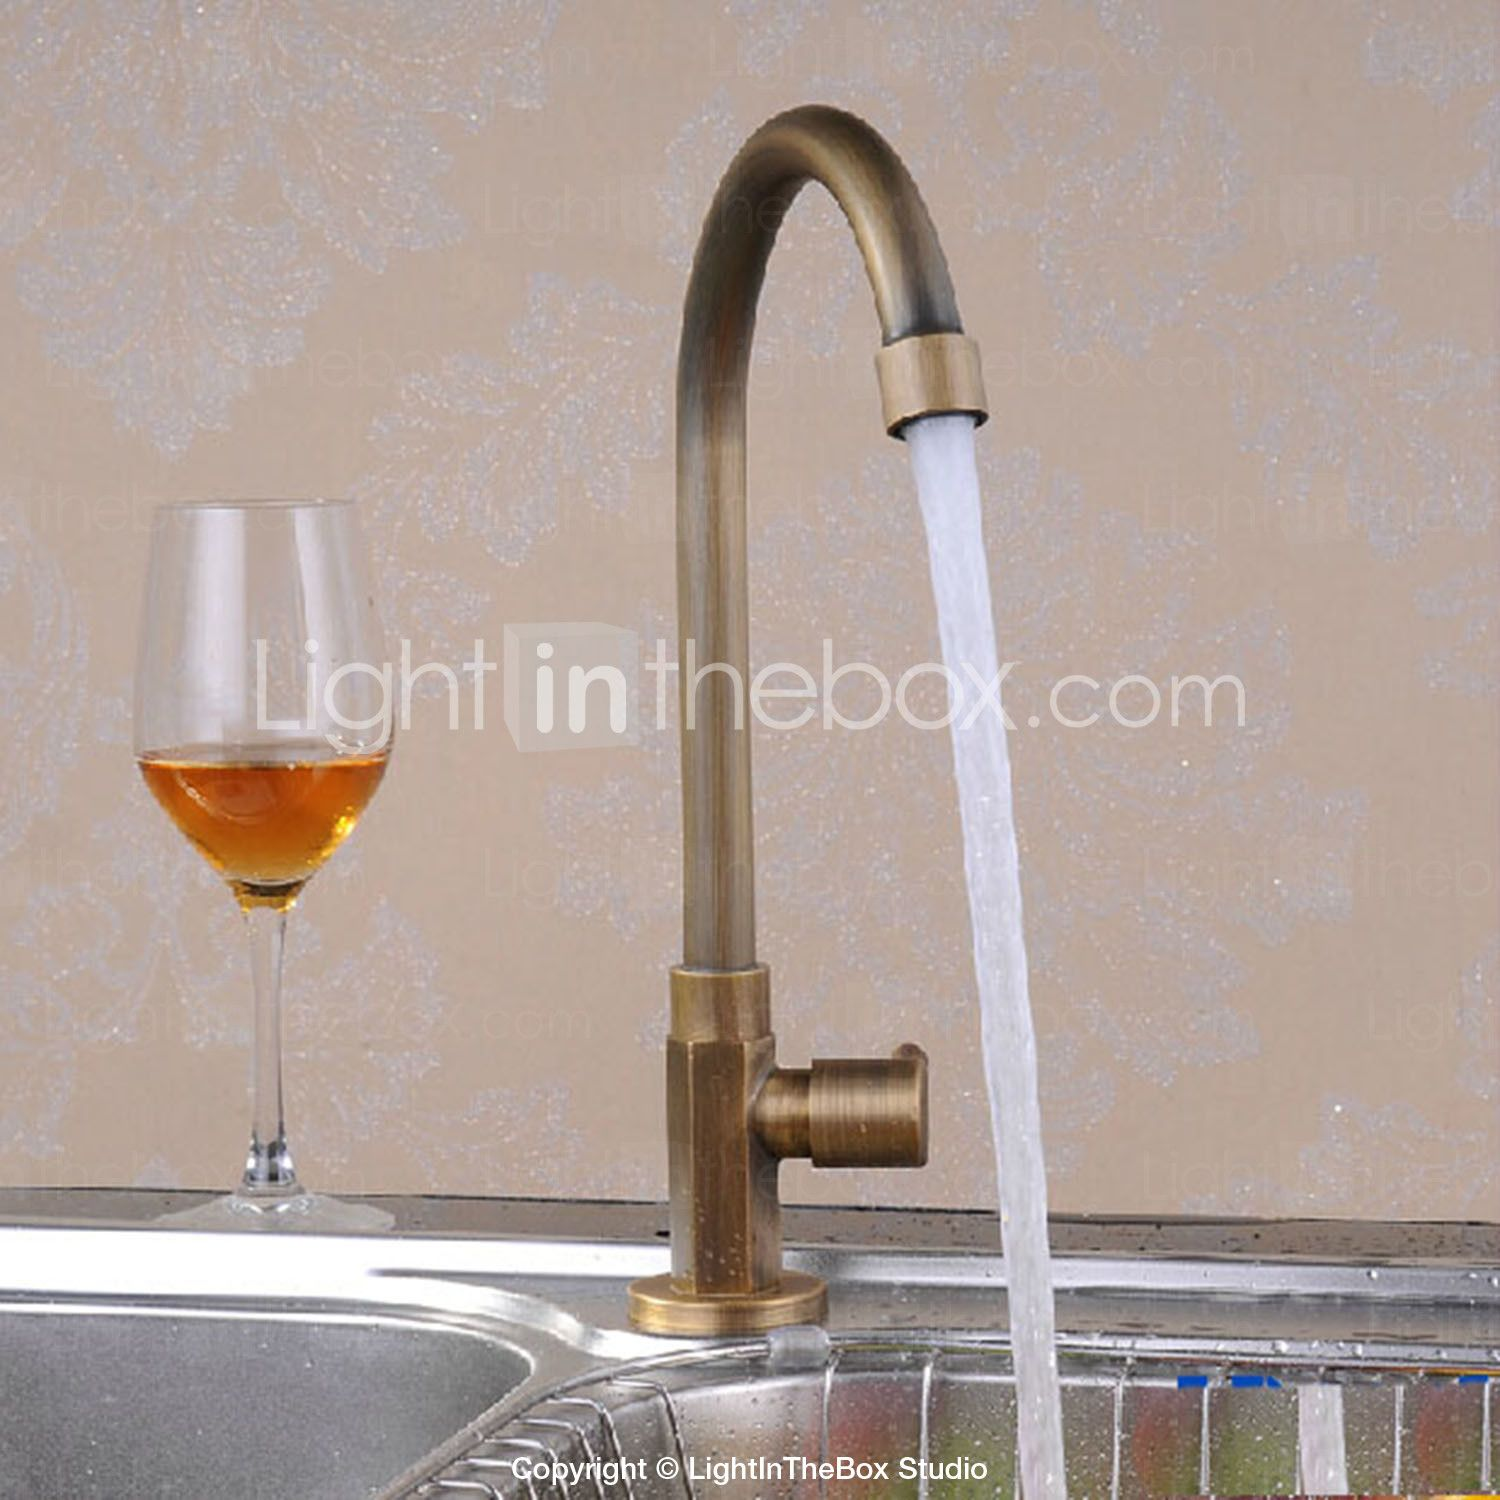 Faucet kitchen messing